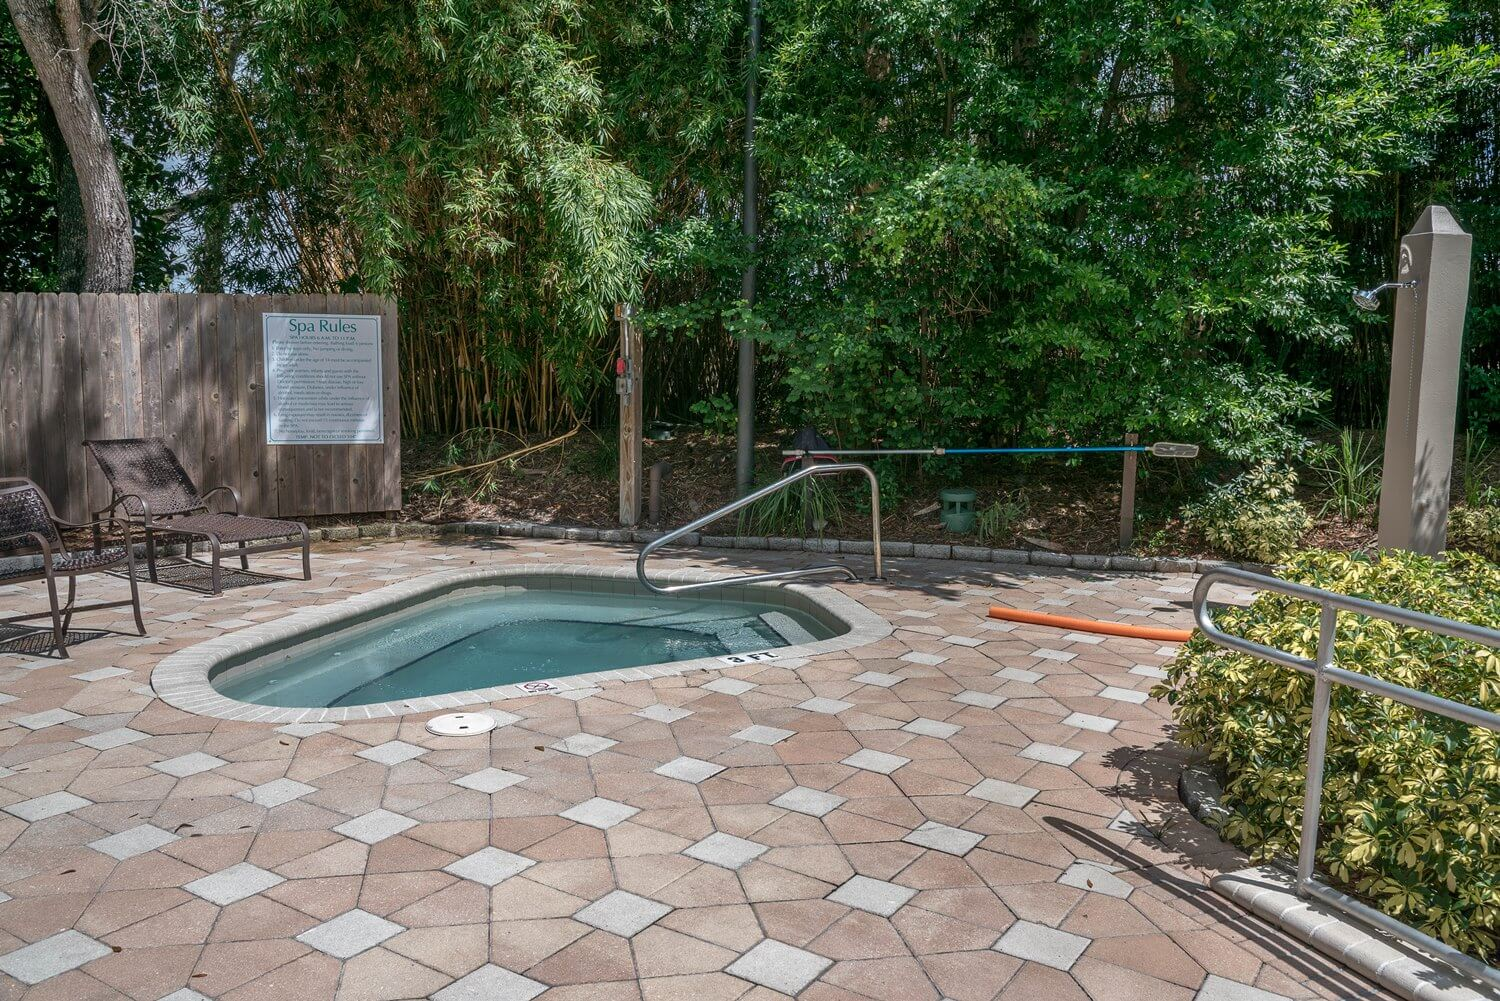 Whirlpool spa at DoubleTree Suites by Hilton Orlando - Disney Springs Resort Area